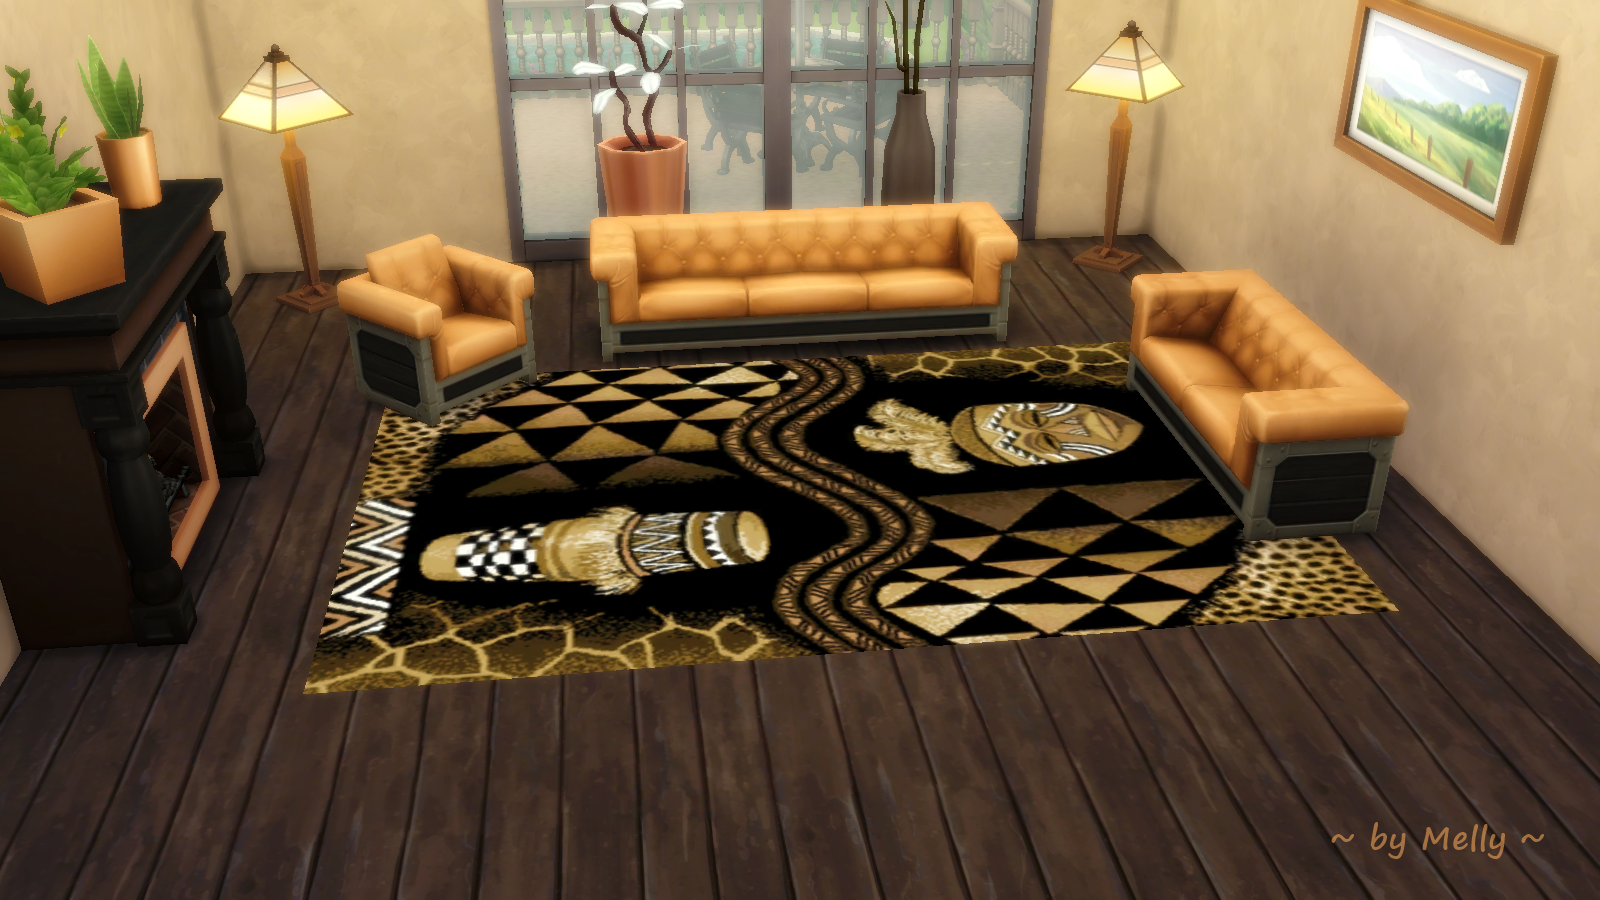 Sims 3 Teppiche Download Sims Houses By Melly Rugs 008 Afrika Style